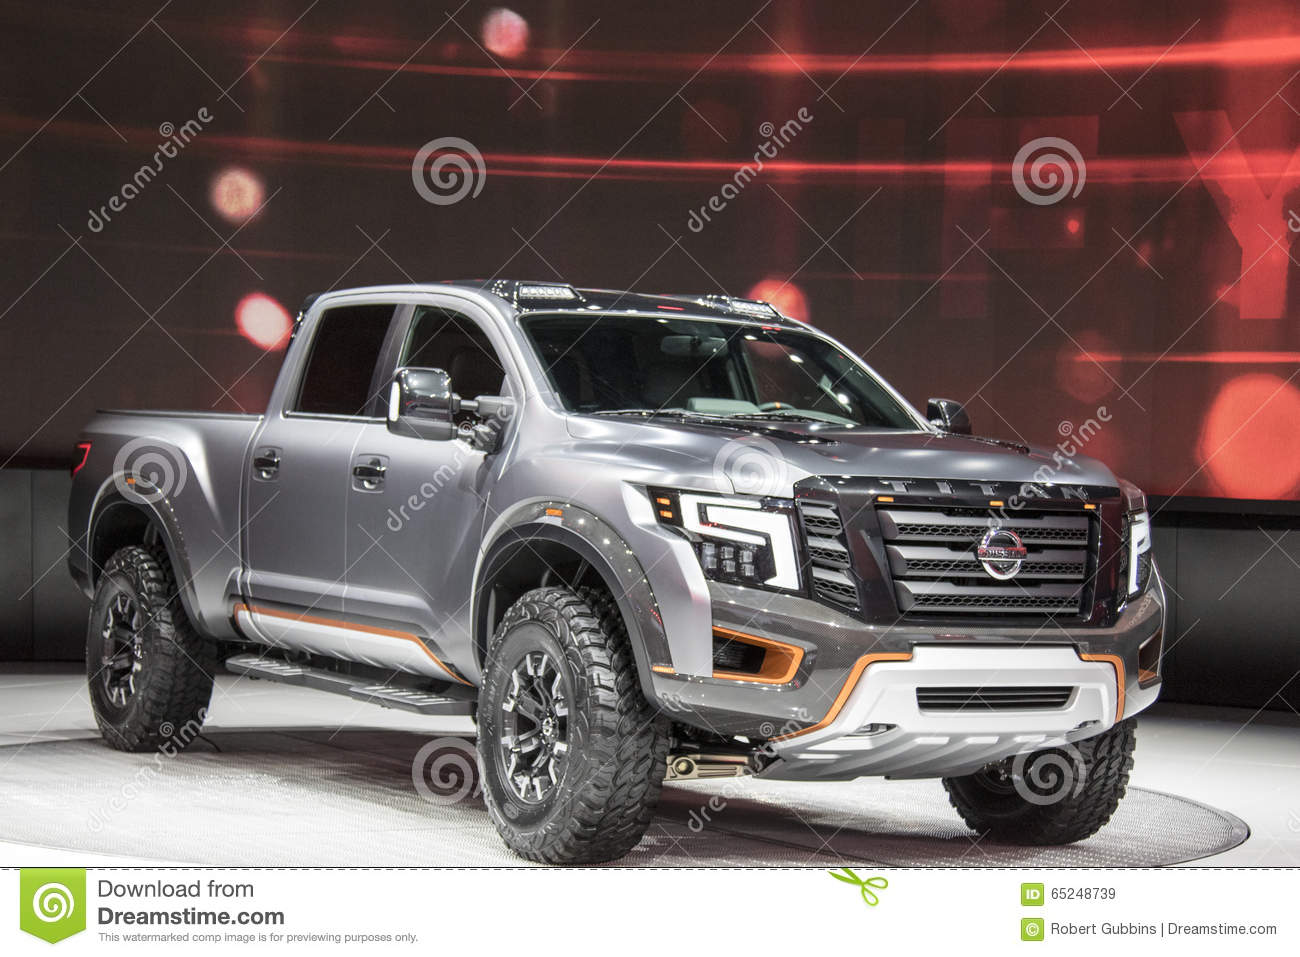 detroit 17 gennaio il camion 2017 di nissan titan pickup al immagine stock editoriale. Black Bedroom Furniture Sets. Home Design Ideas